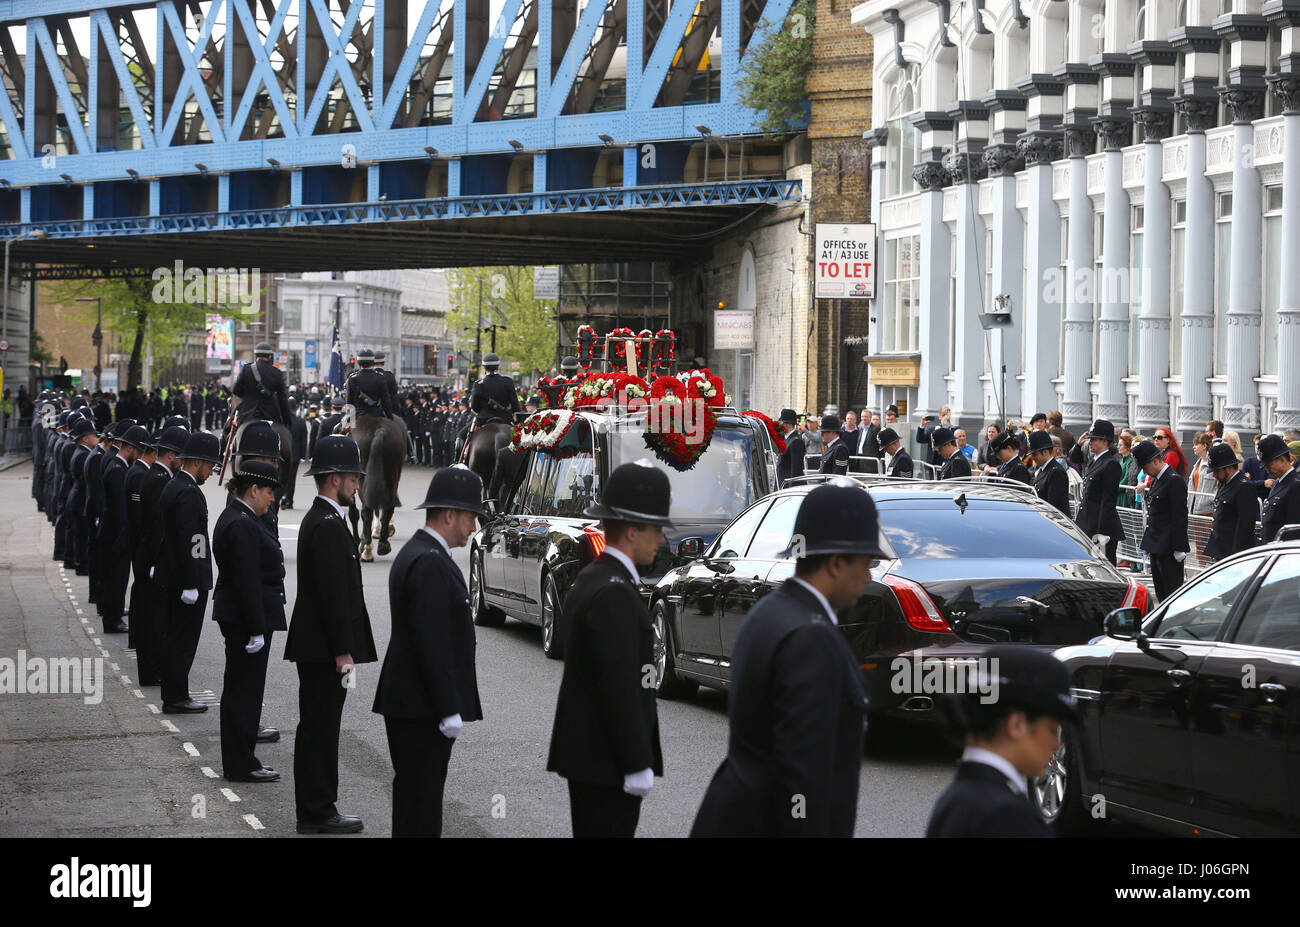 Police line the route as the coffin of Pc Keith Palmer leaves Southwark Cathedral in London after his funeral service. - Stock Image